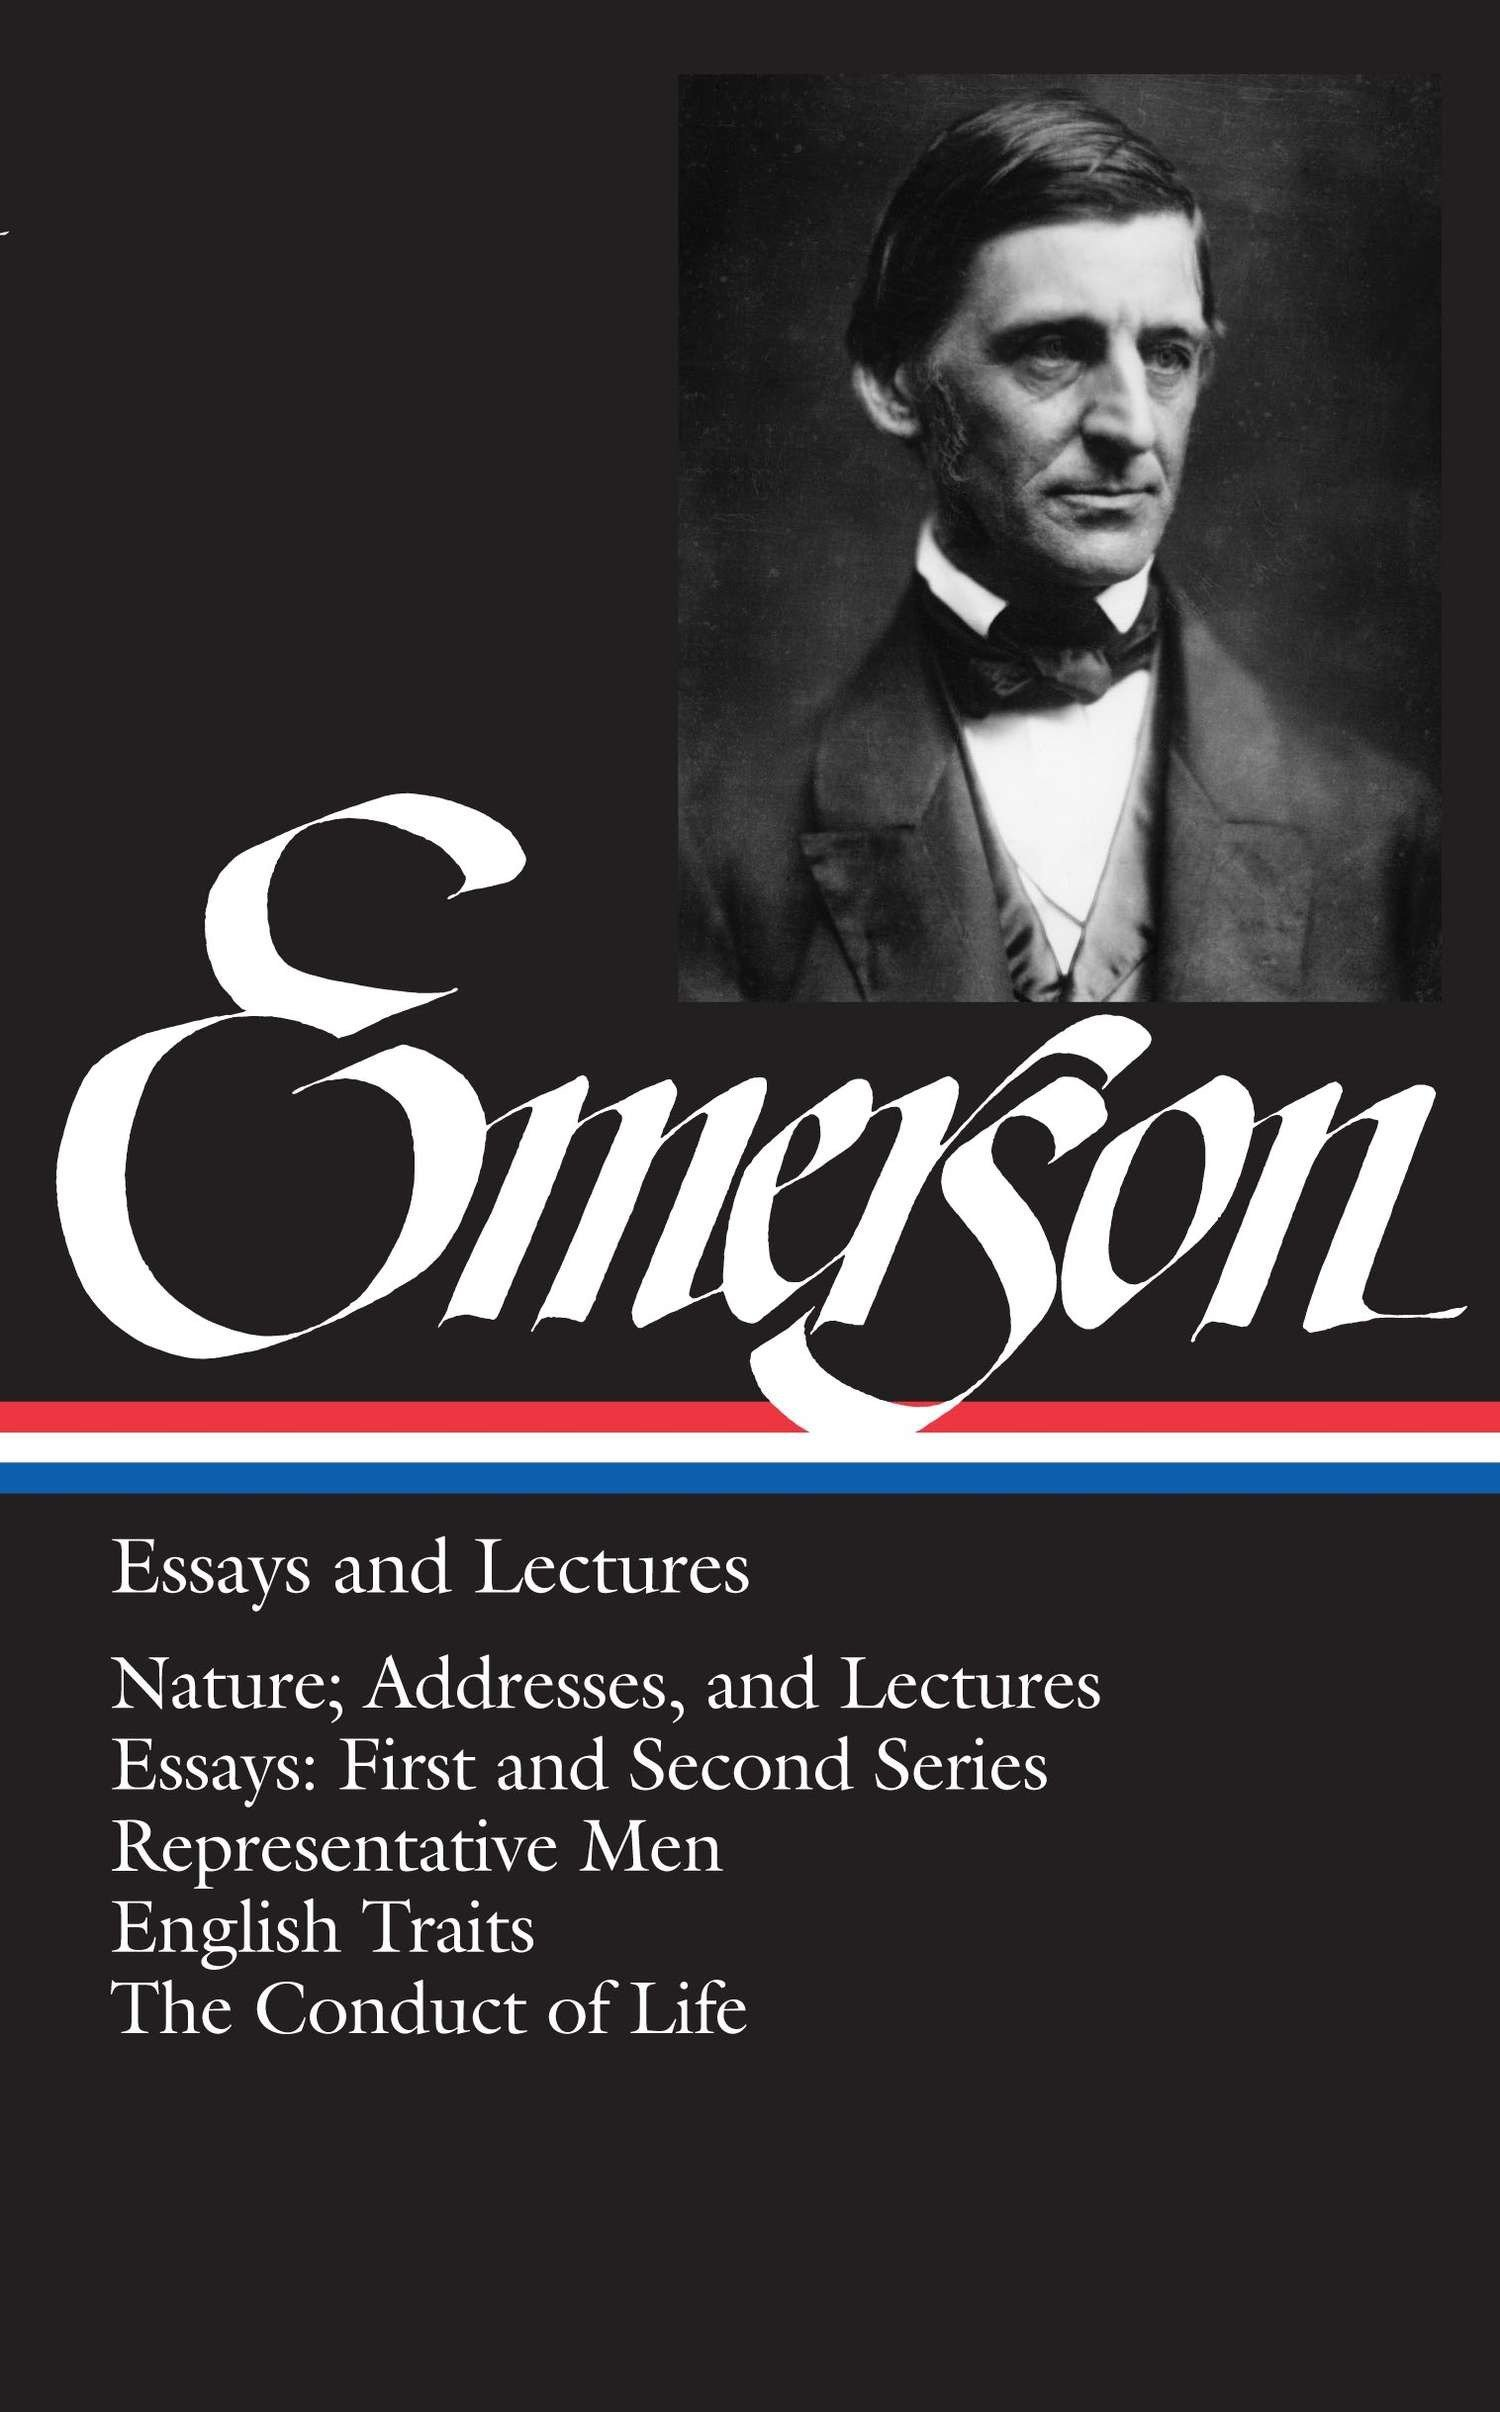 Ralph Waldo Emerson: Essays and Lectures (LOA #15): Nature; Addresses, and Lectures / Essays: First and Second Series / Representative Men / English ... America Ralph Waldo Emerson Edition, Band 1)